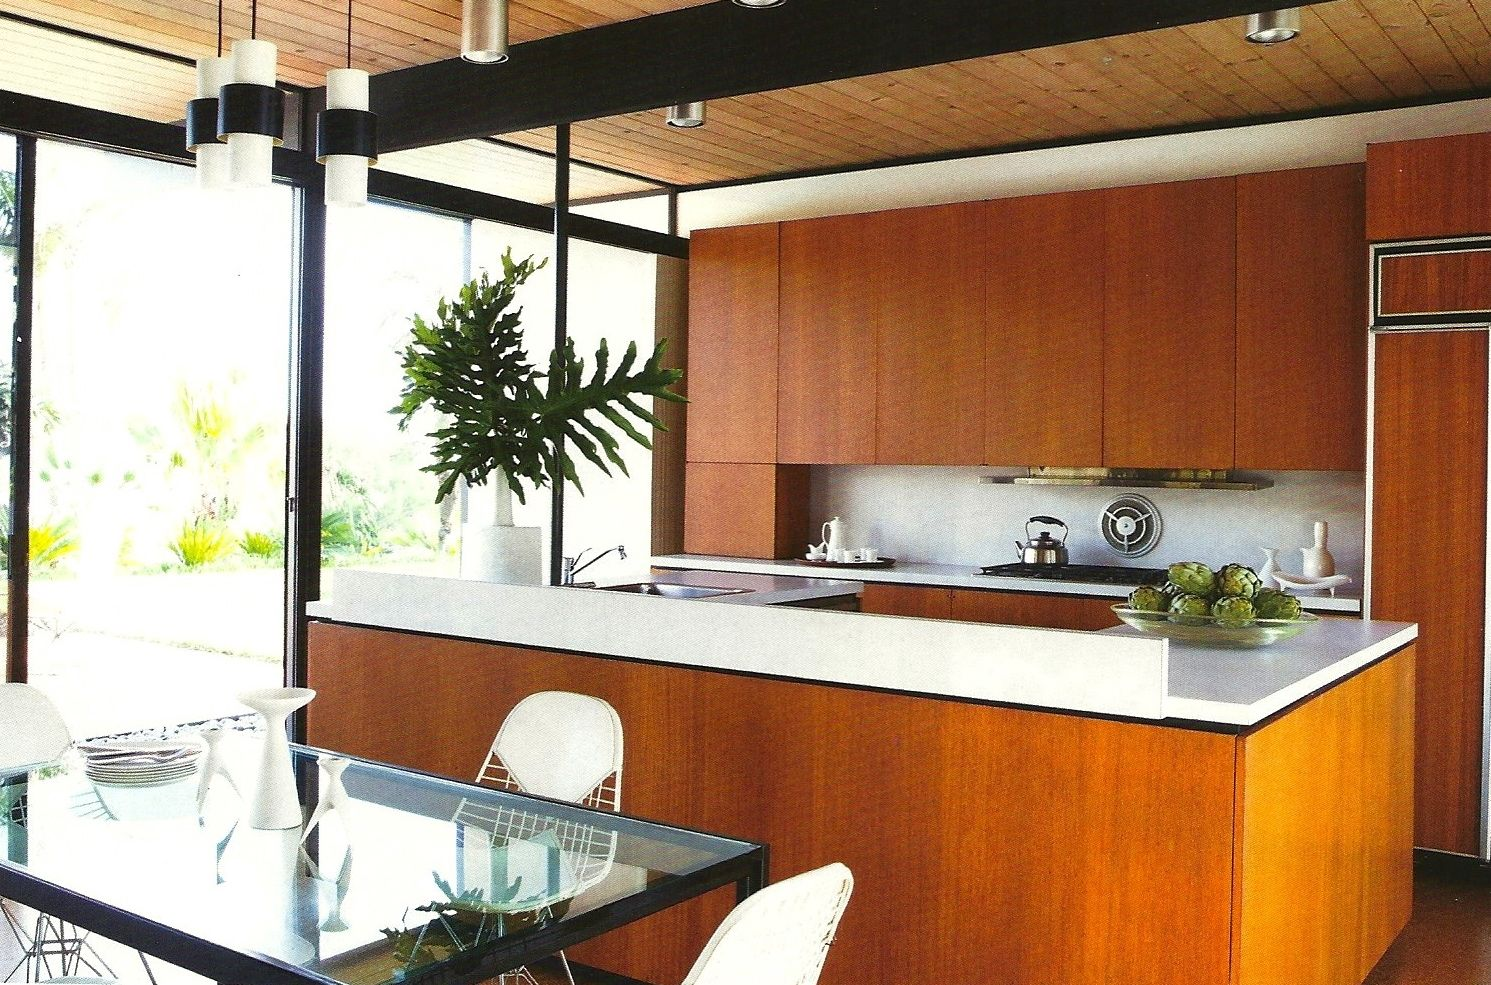 Matteoli mobili ~ Wood paneling on ceiling black beams black window framing wood